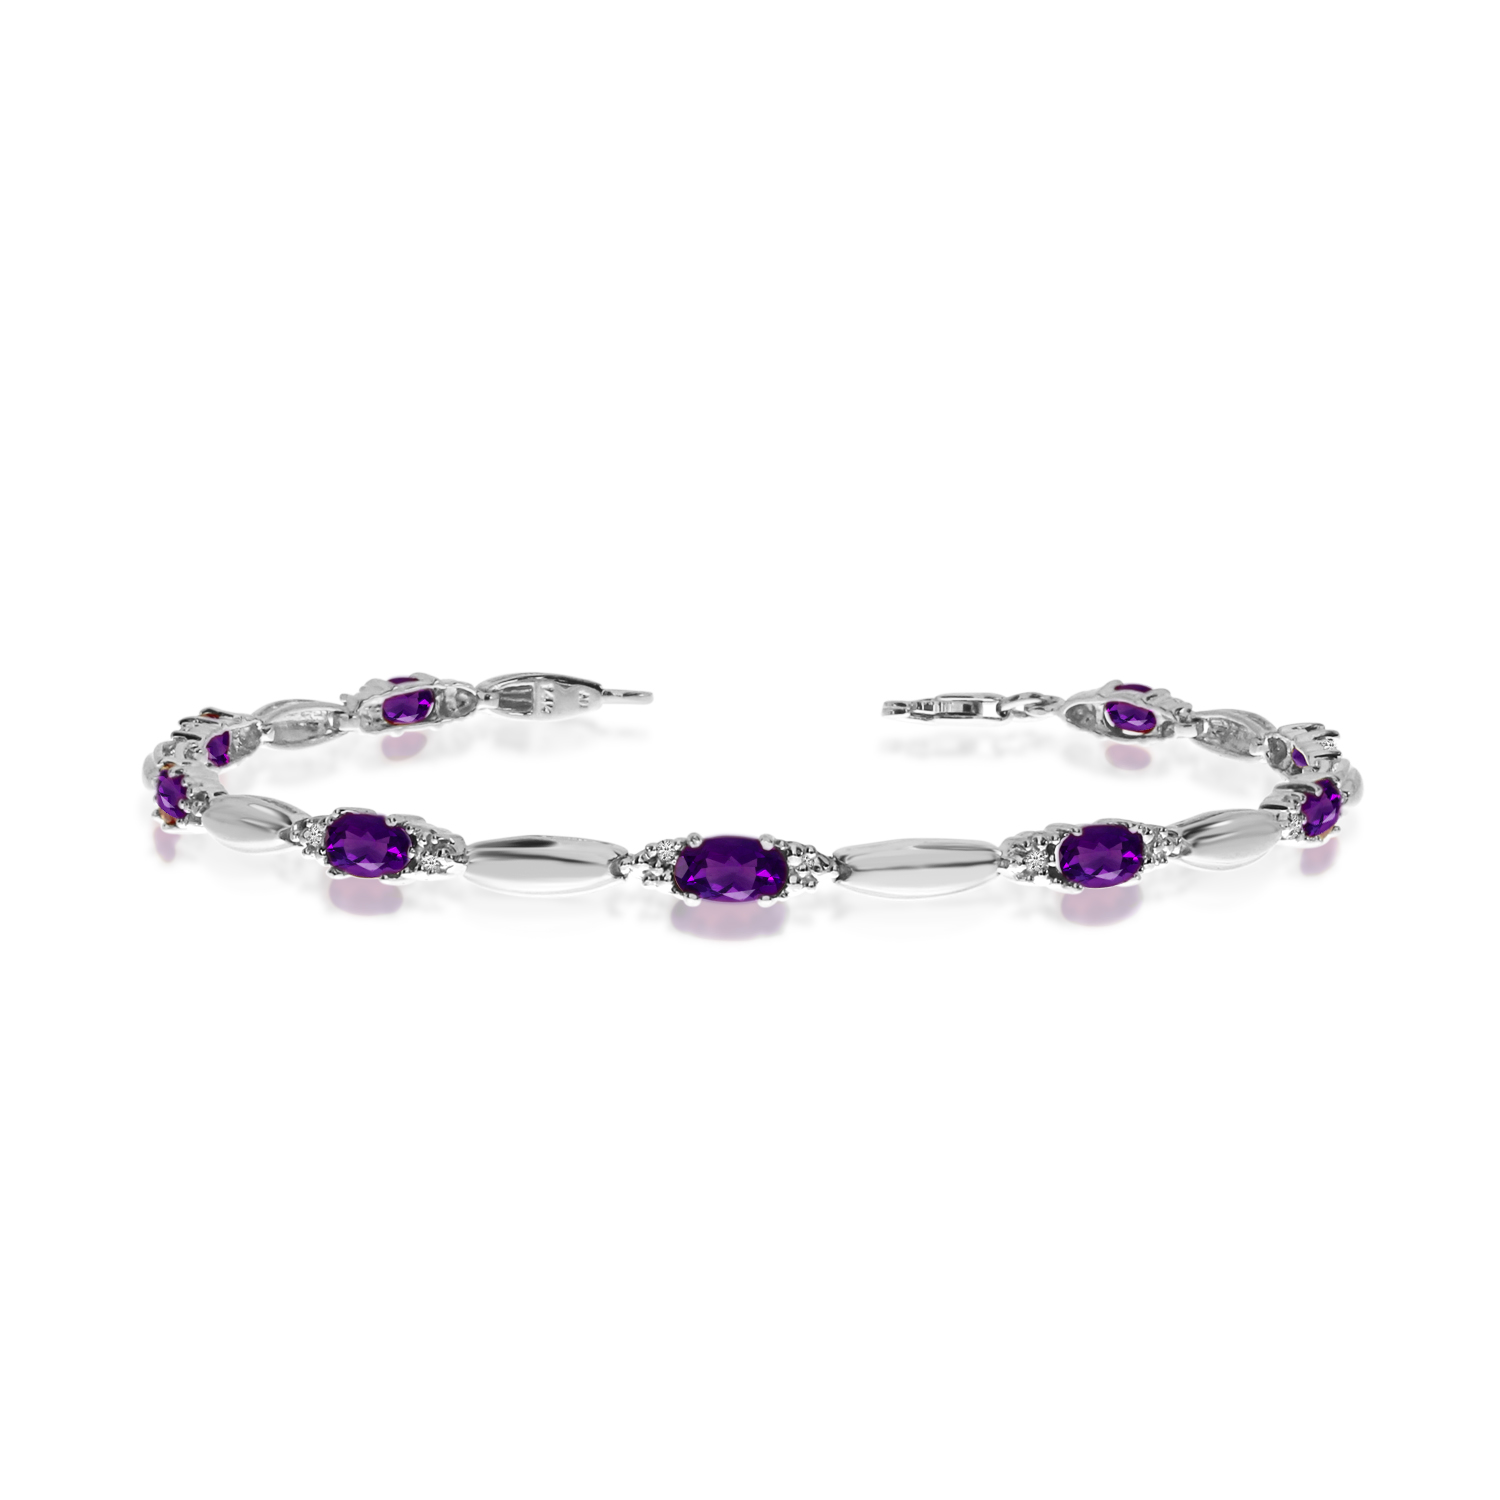 10K White Gold Oval Amethyst and Diamond Bracelet by